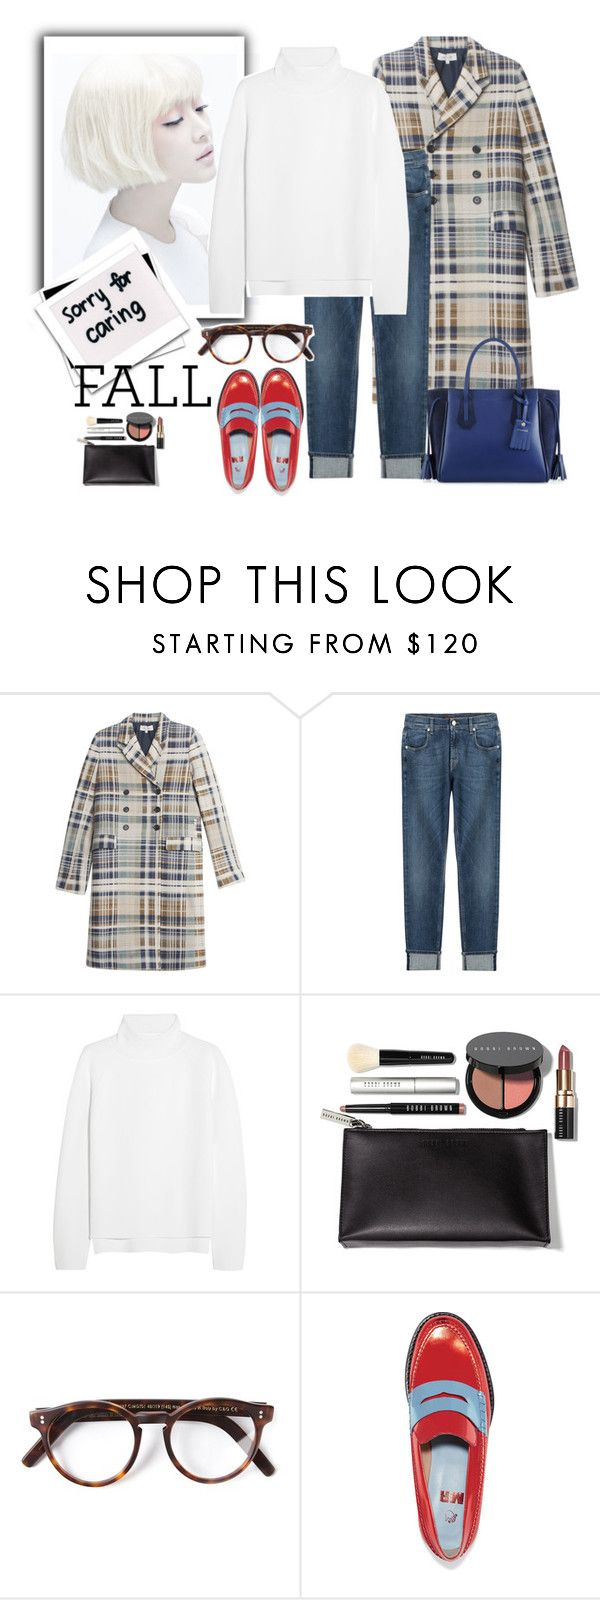 """""""Welcome fall.."""" by gul07 ❤ liked on Polyvore featuring Paul & Joe, 7 For All Mankind, Vanessa Bruno, Bobbi Brown Cosmetics, Cutler and Gross, MR by Man Repeller and Longchamp"""